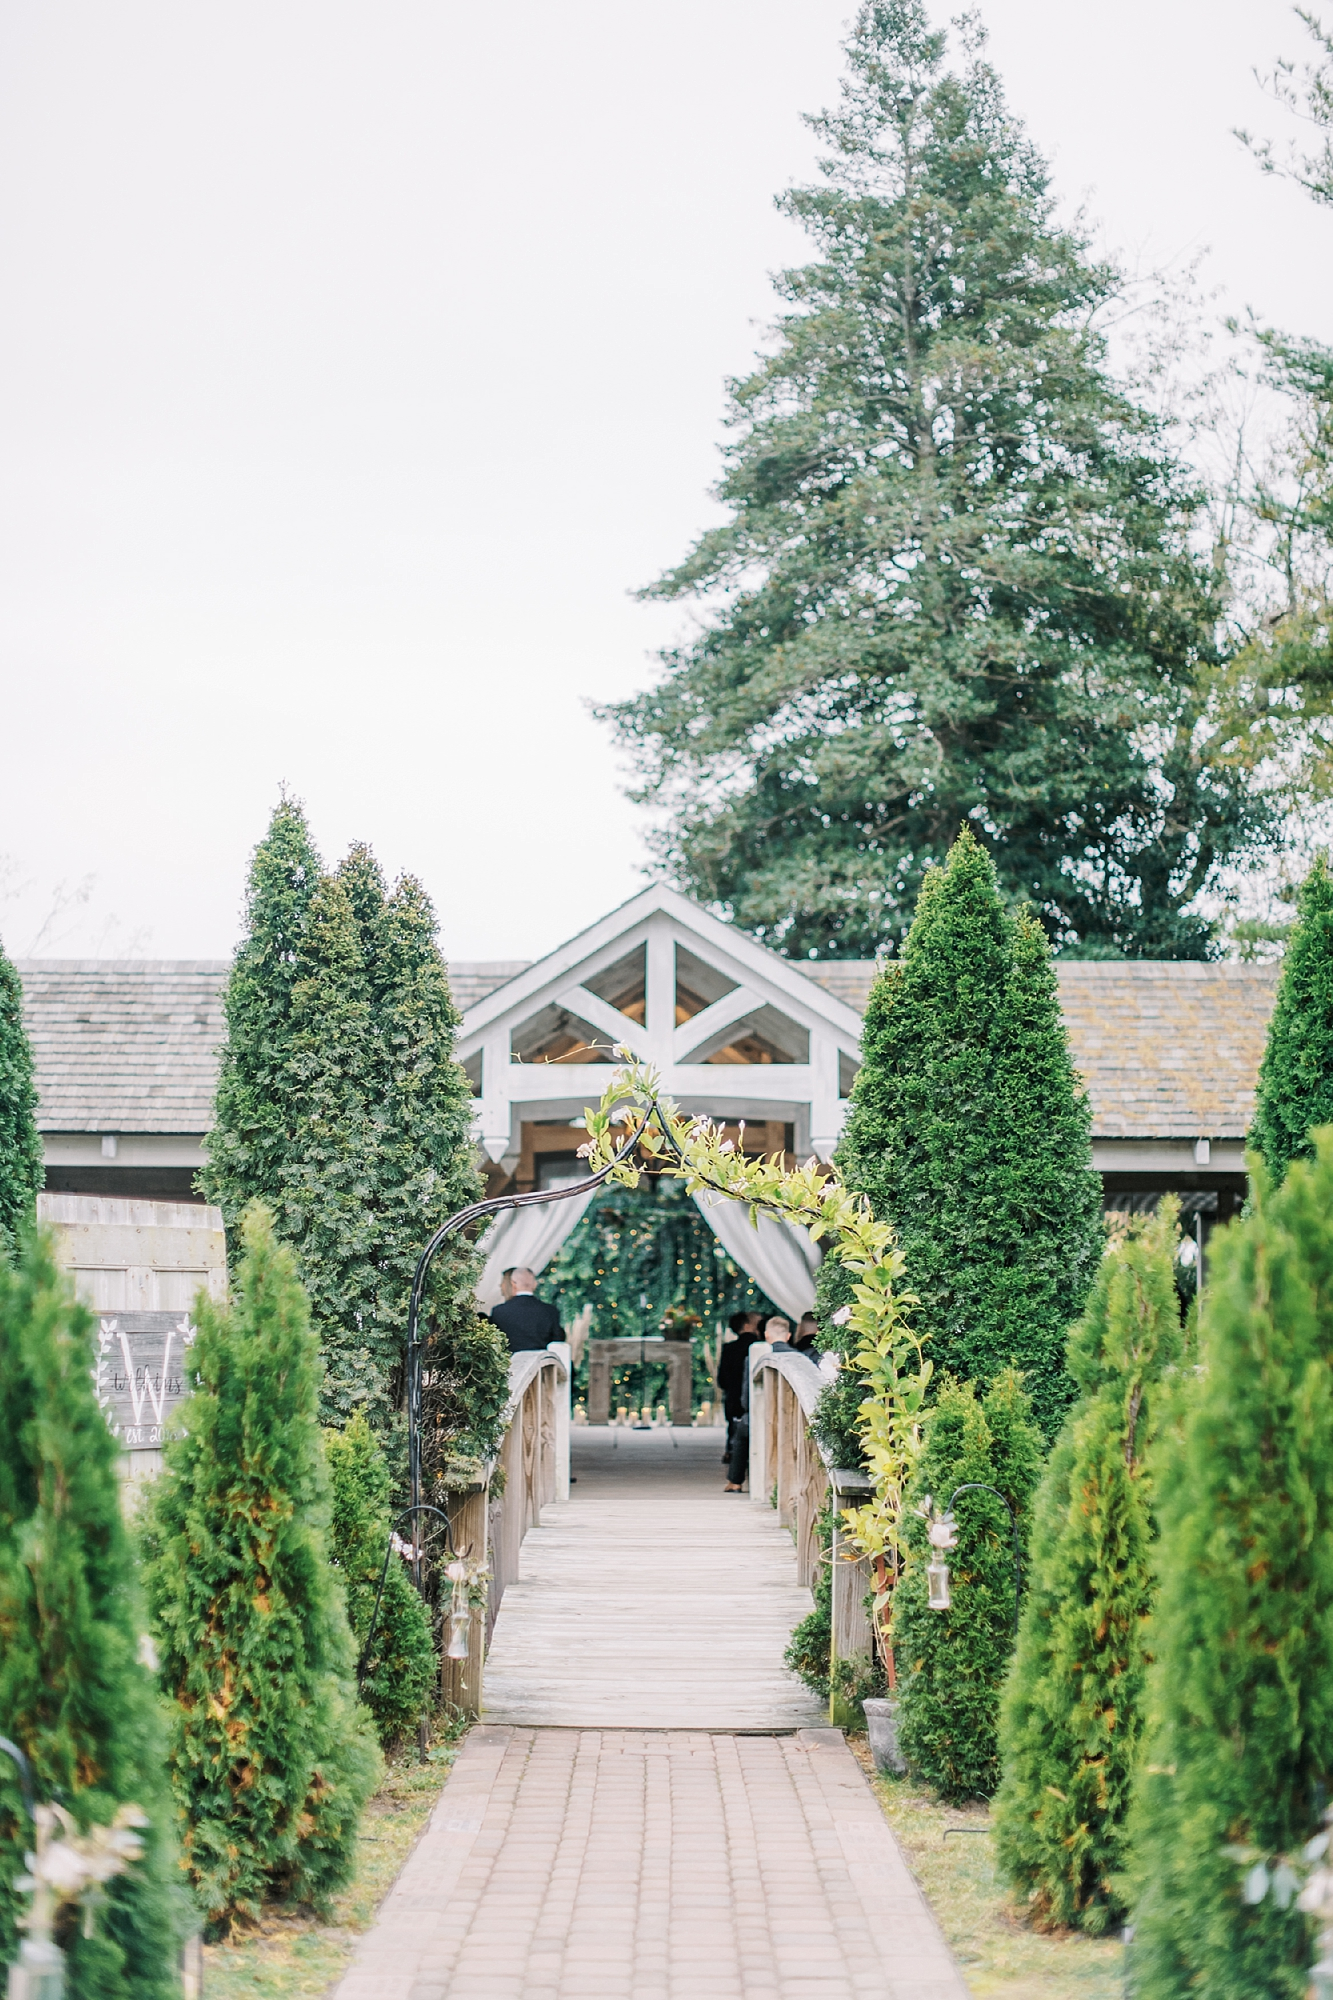 Sweet Garden Wedding Photography Abbie Holmes Estate in Cape May NJ by Magdalena Studios 0061